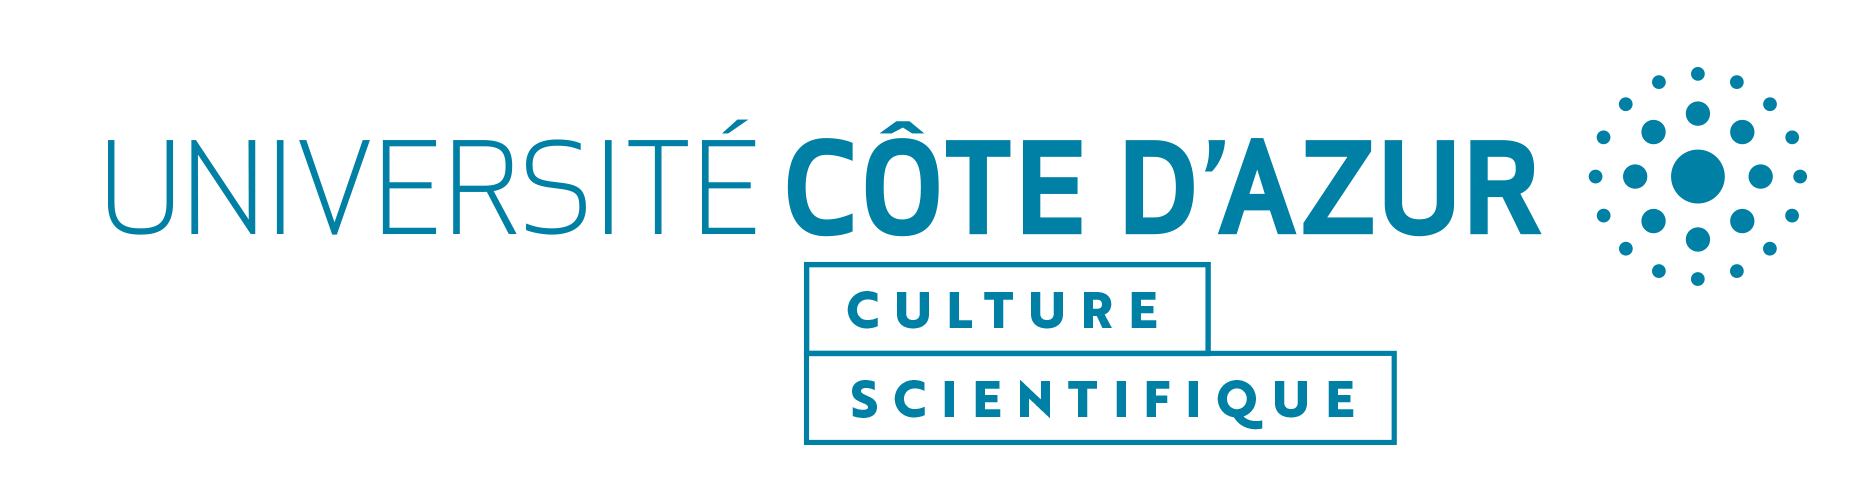 logo-Culture scientifique